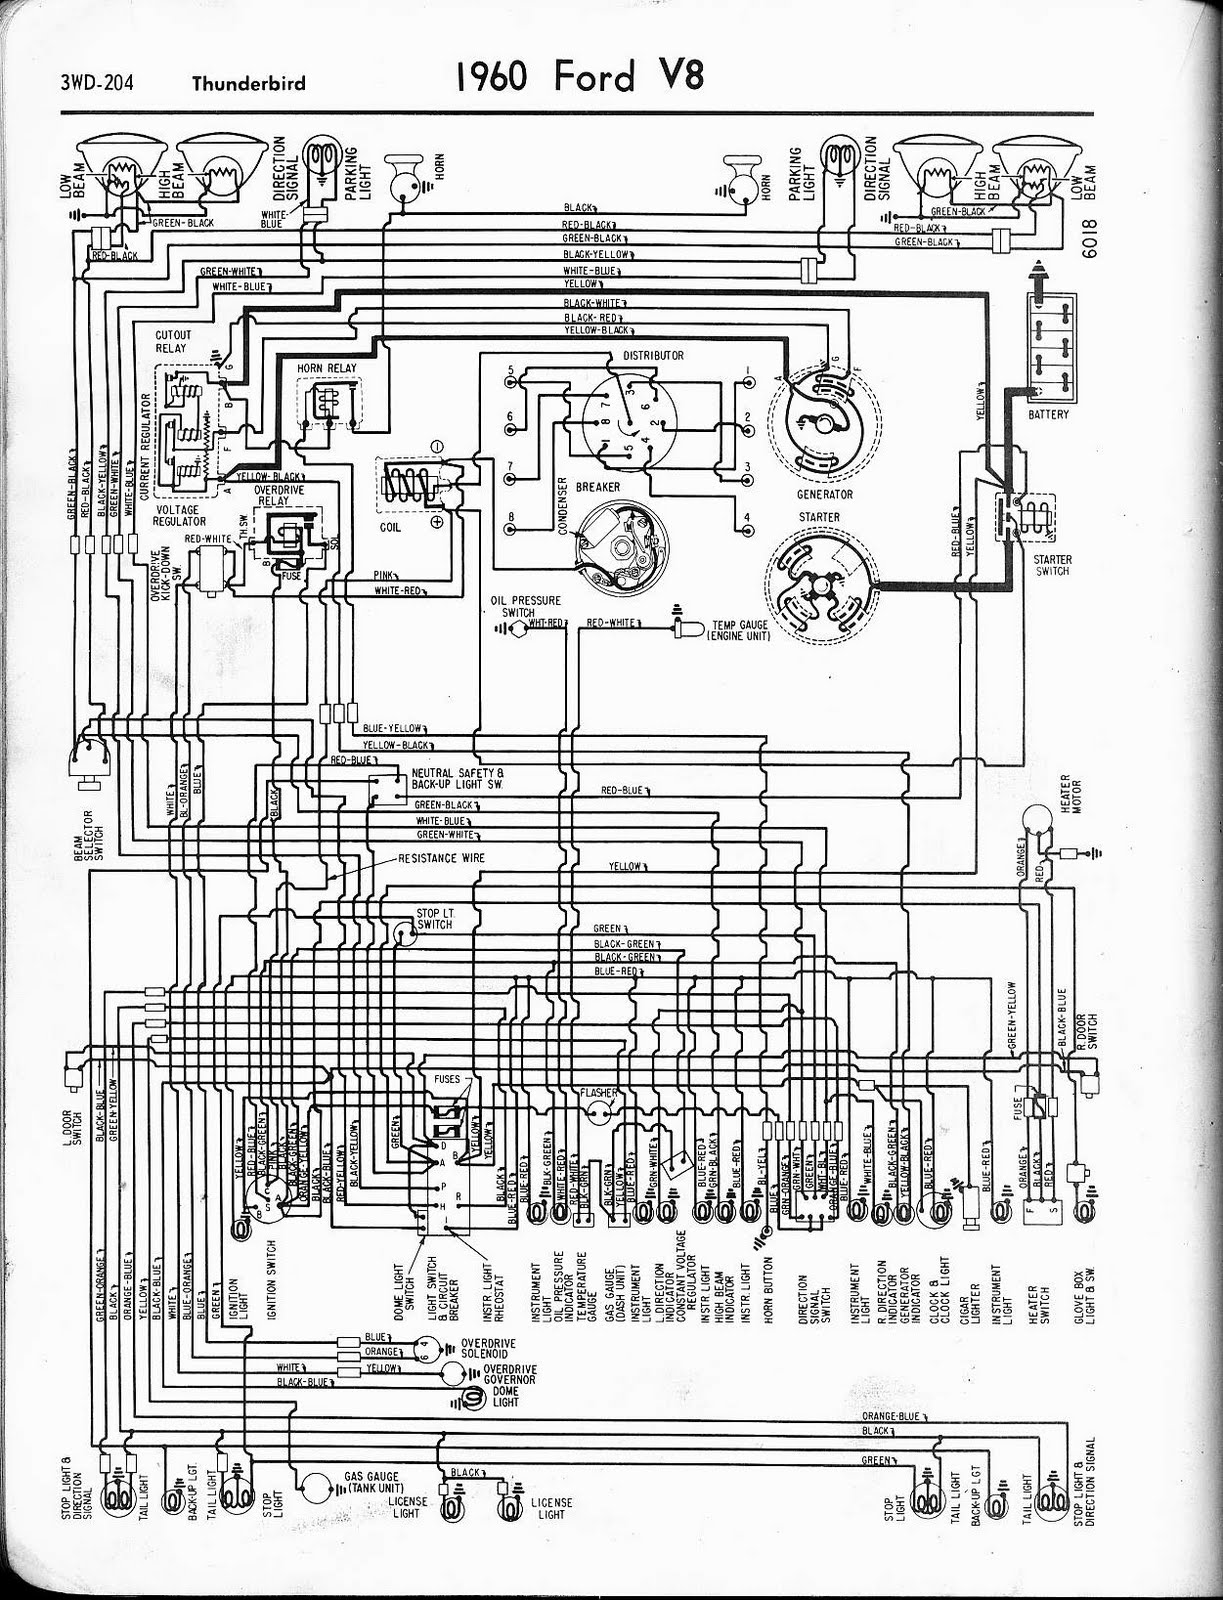 small resolution of 97 thunderbird wiring diagram wiring diagrams konsult 1997 ford thunderbird wiring diagram